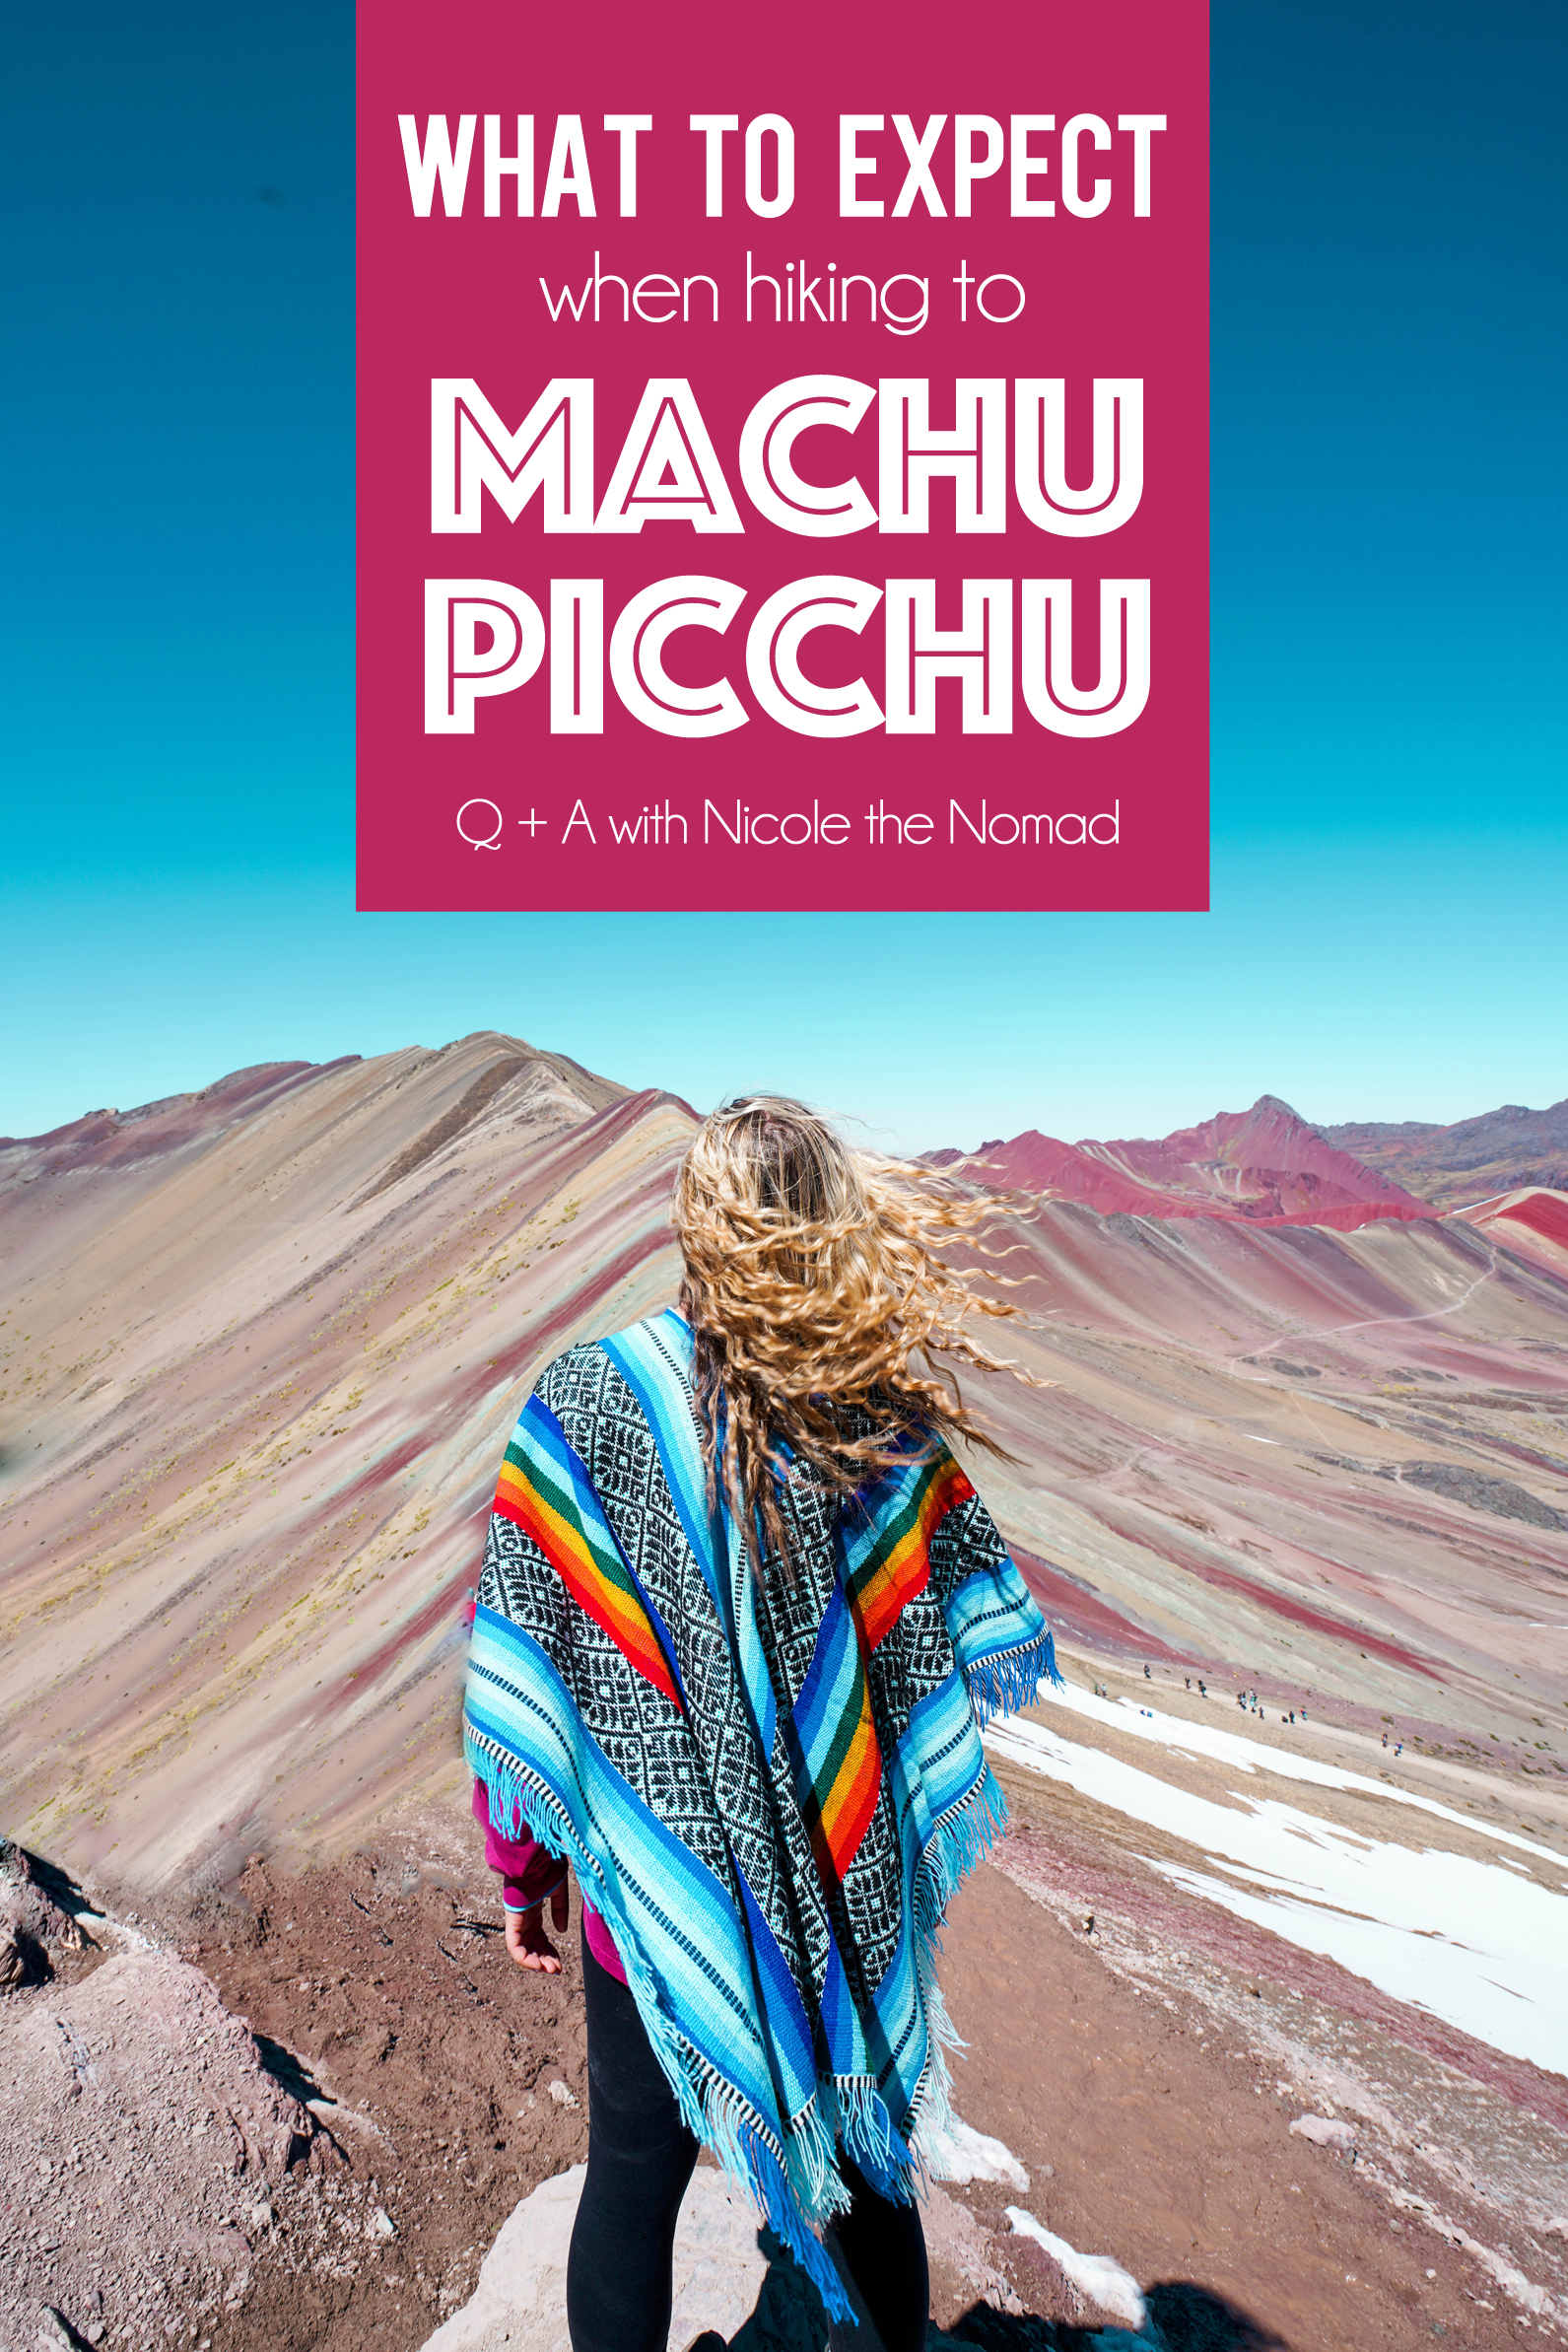 What to expect when hiking to Machu Picchu